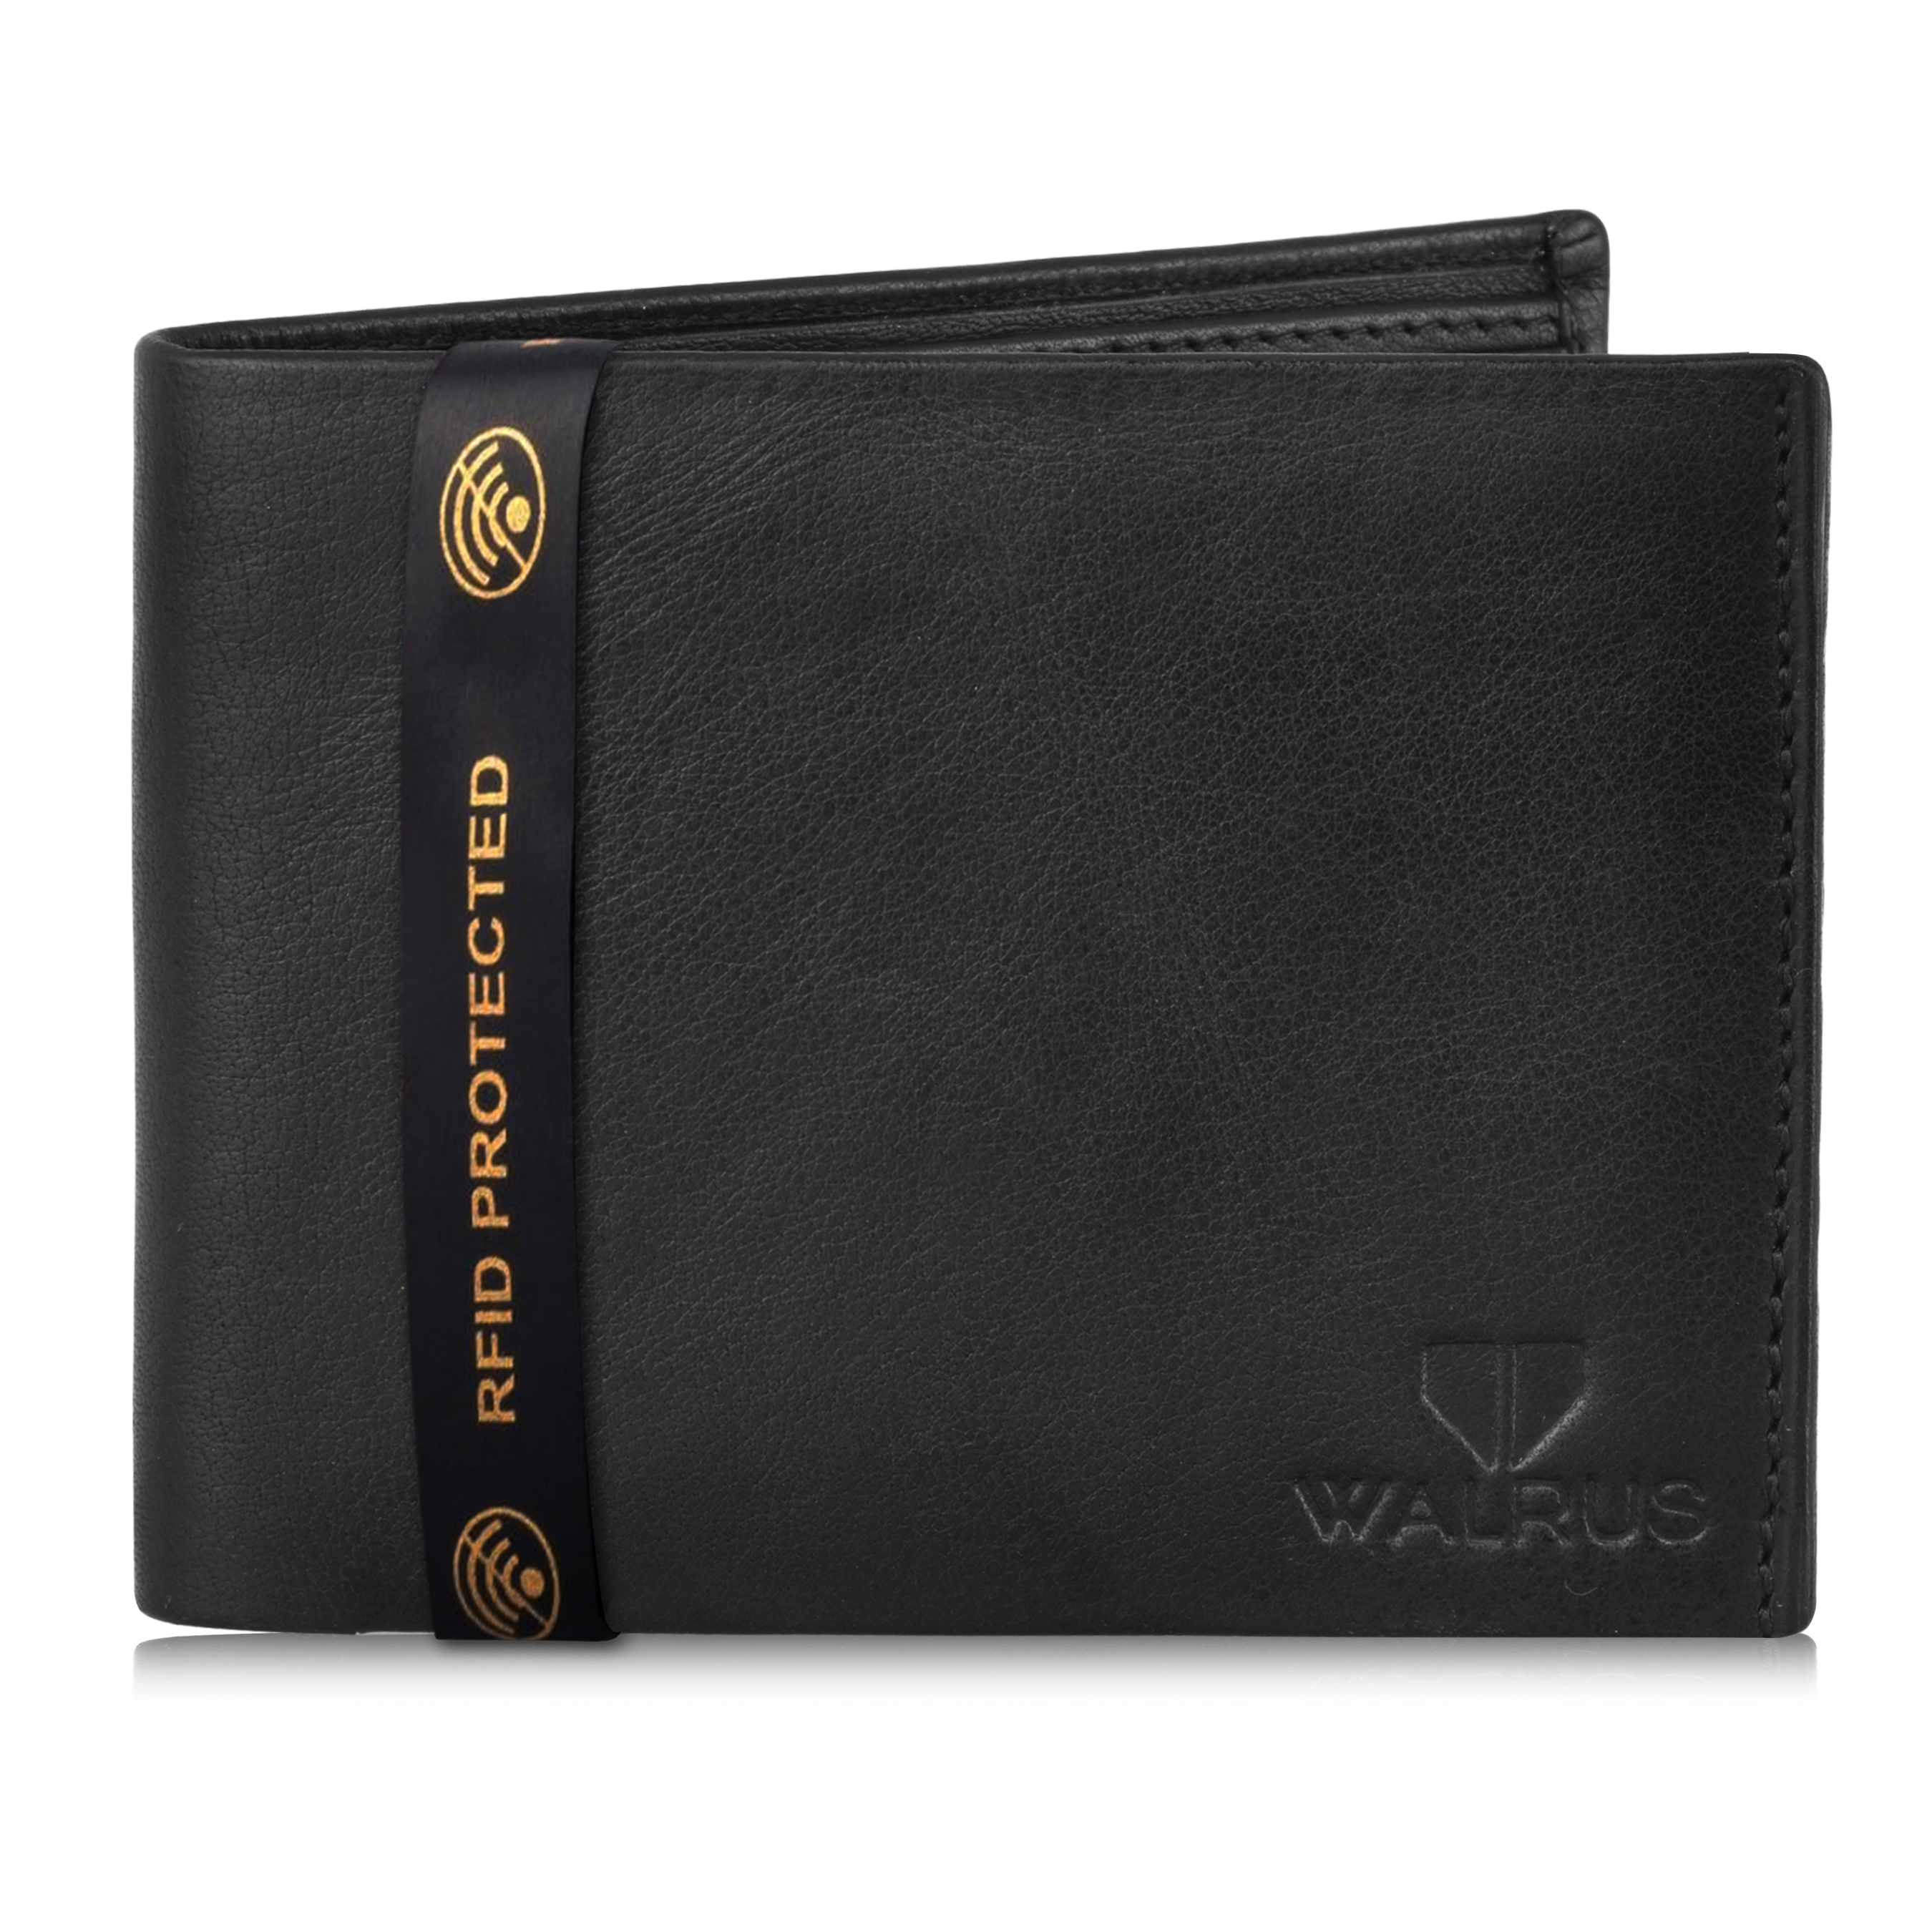 Walrus | Walrus Imperial-VI Black Leather Men Wallet With RFID Protection.